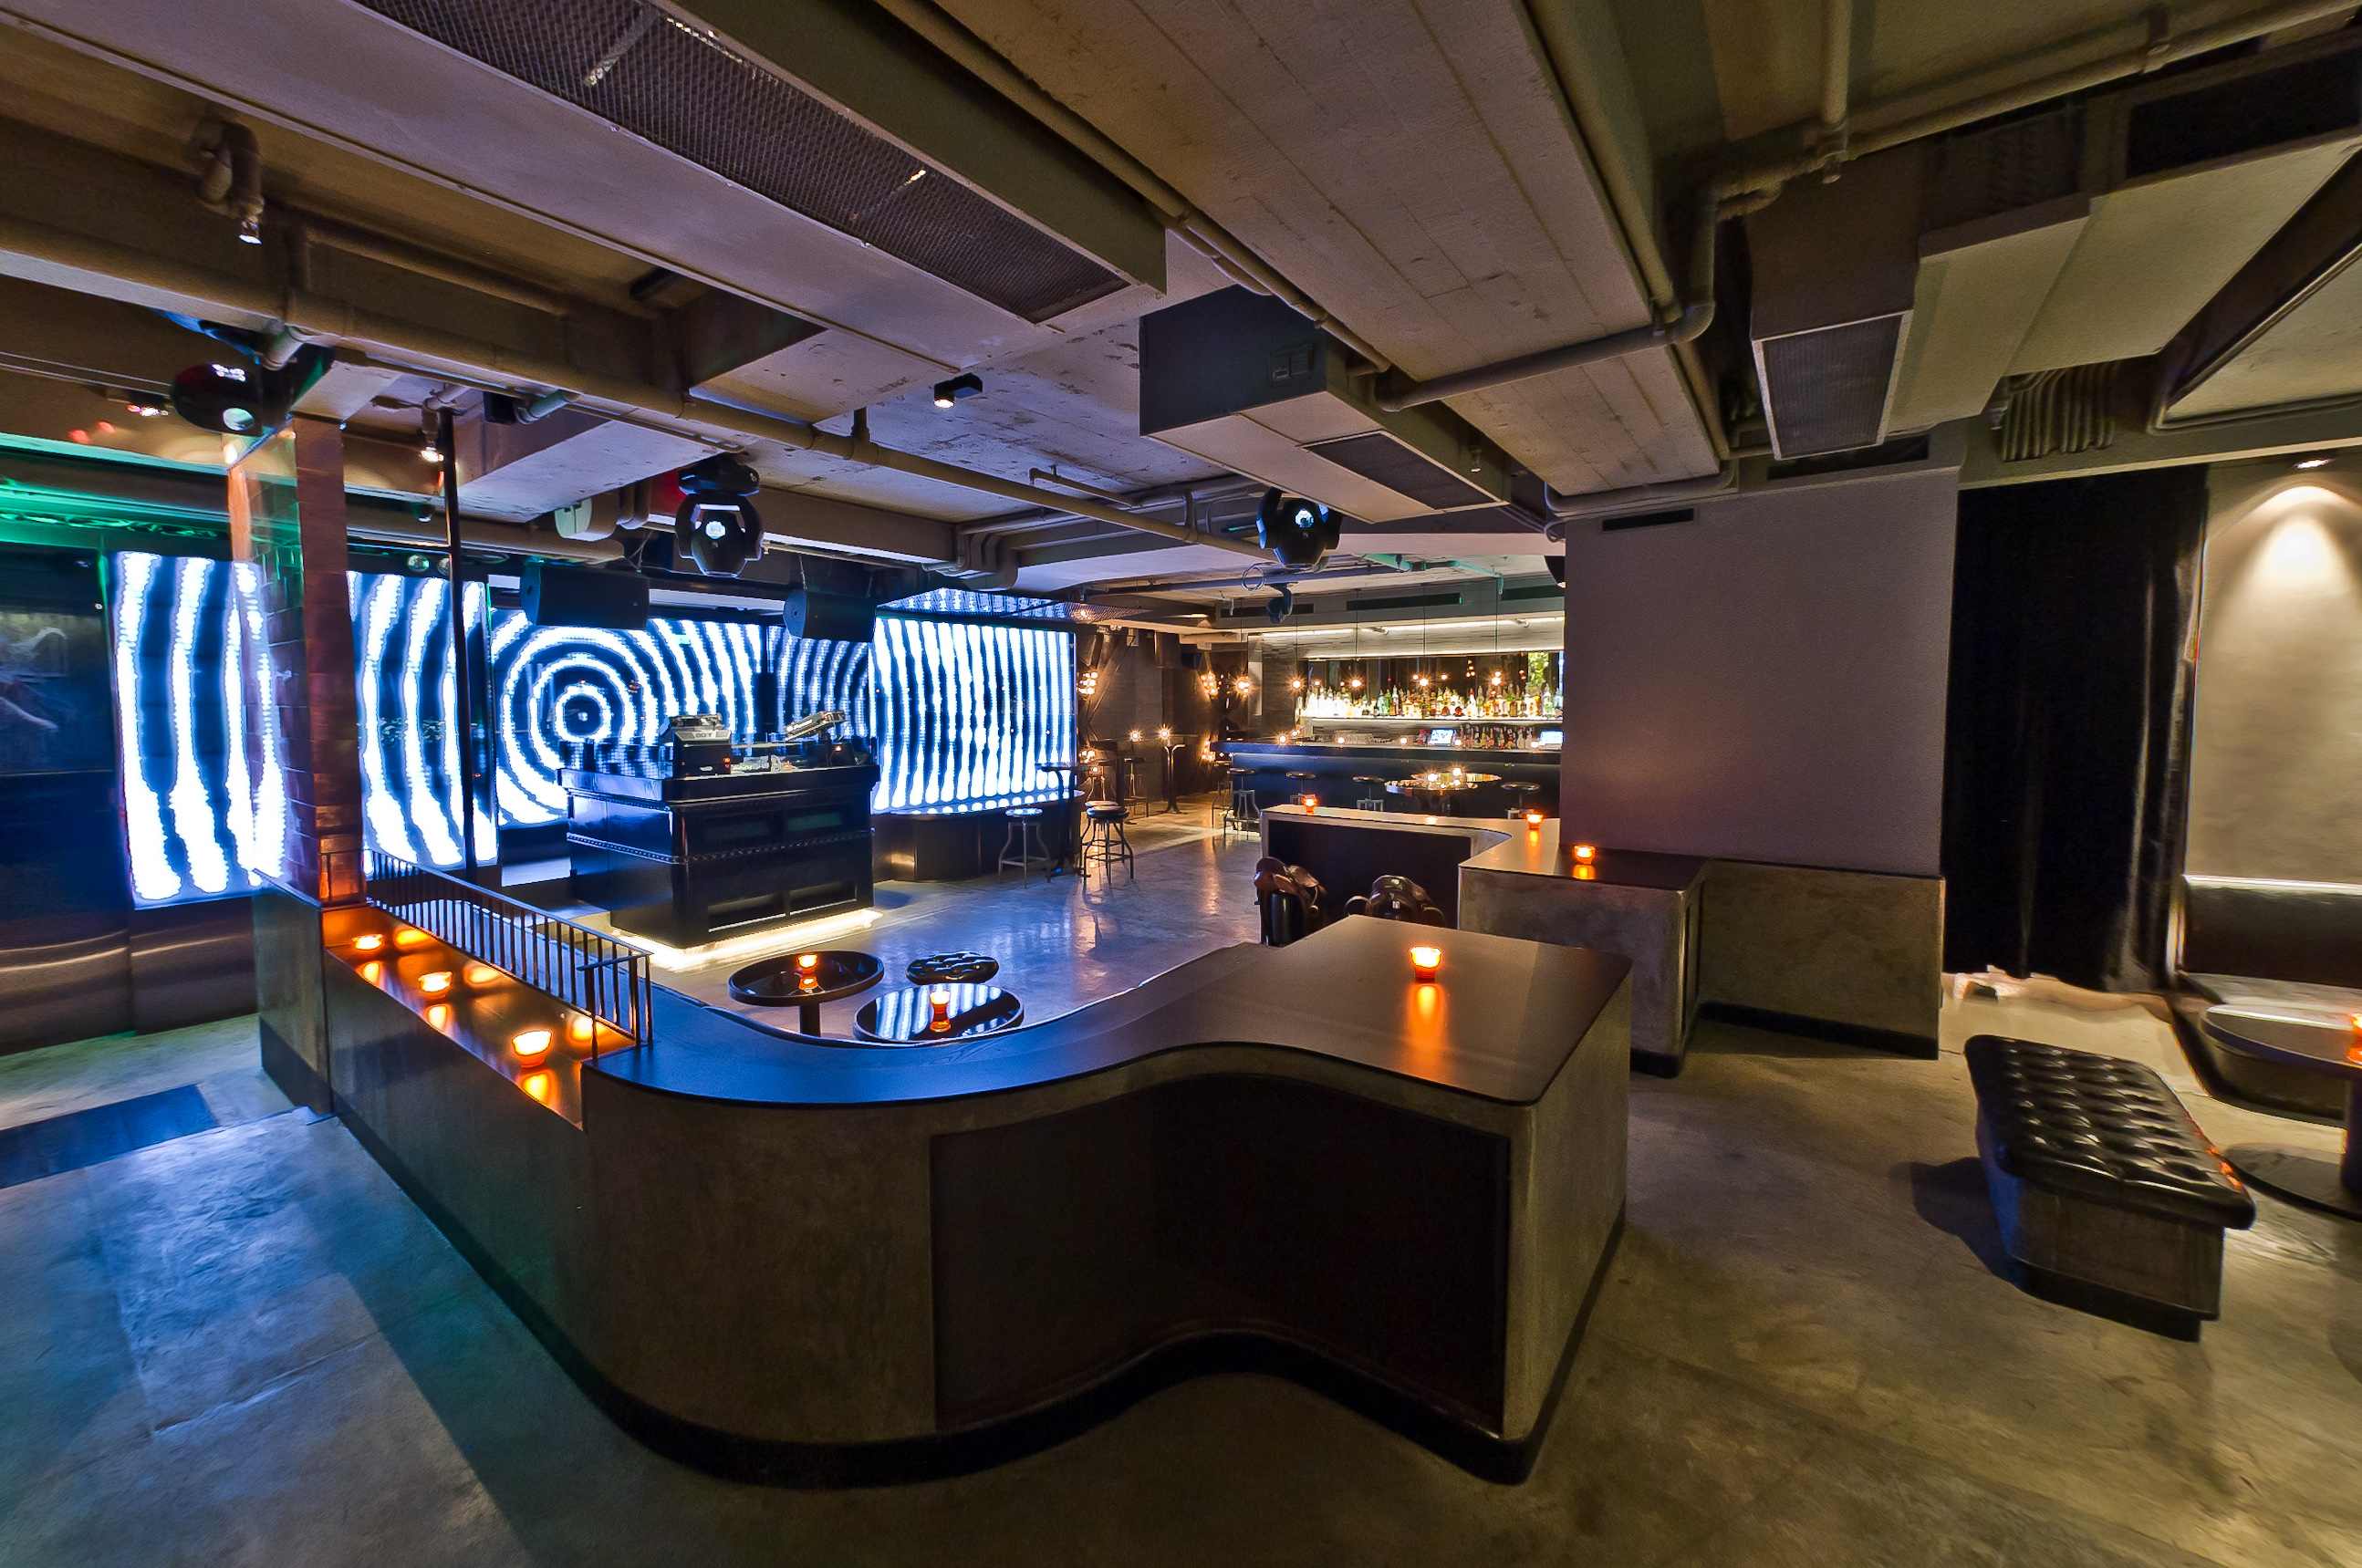 Fly Hong Kong A Pumpin Dance Club Reverberates In The